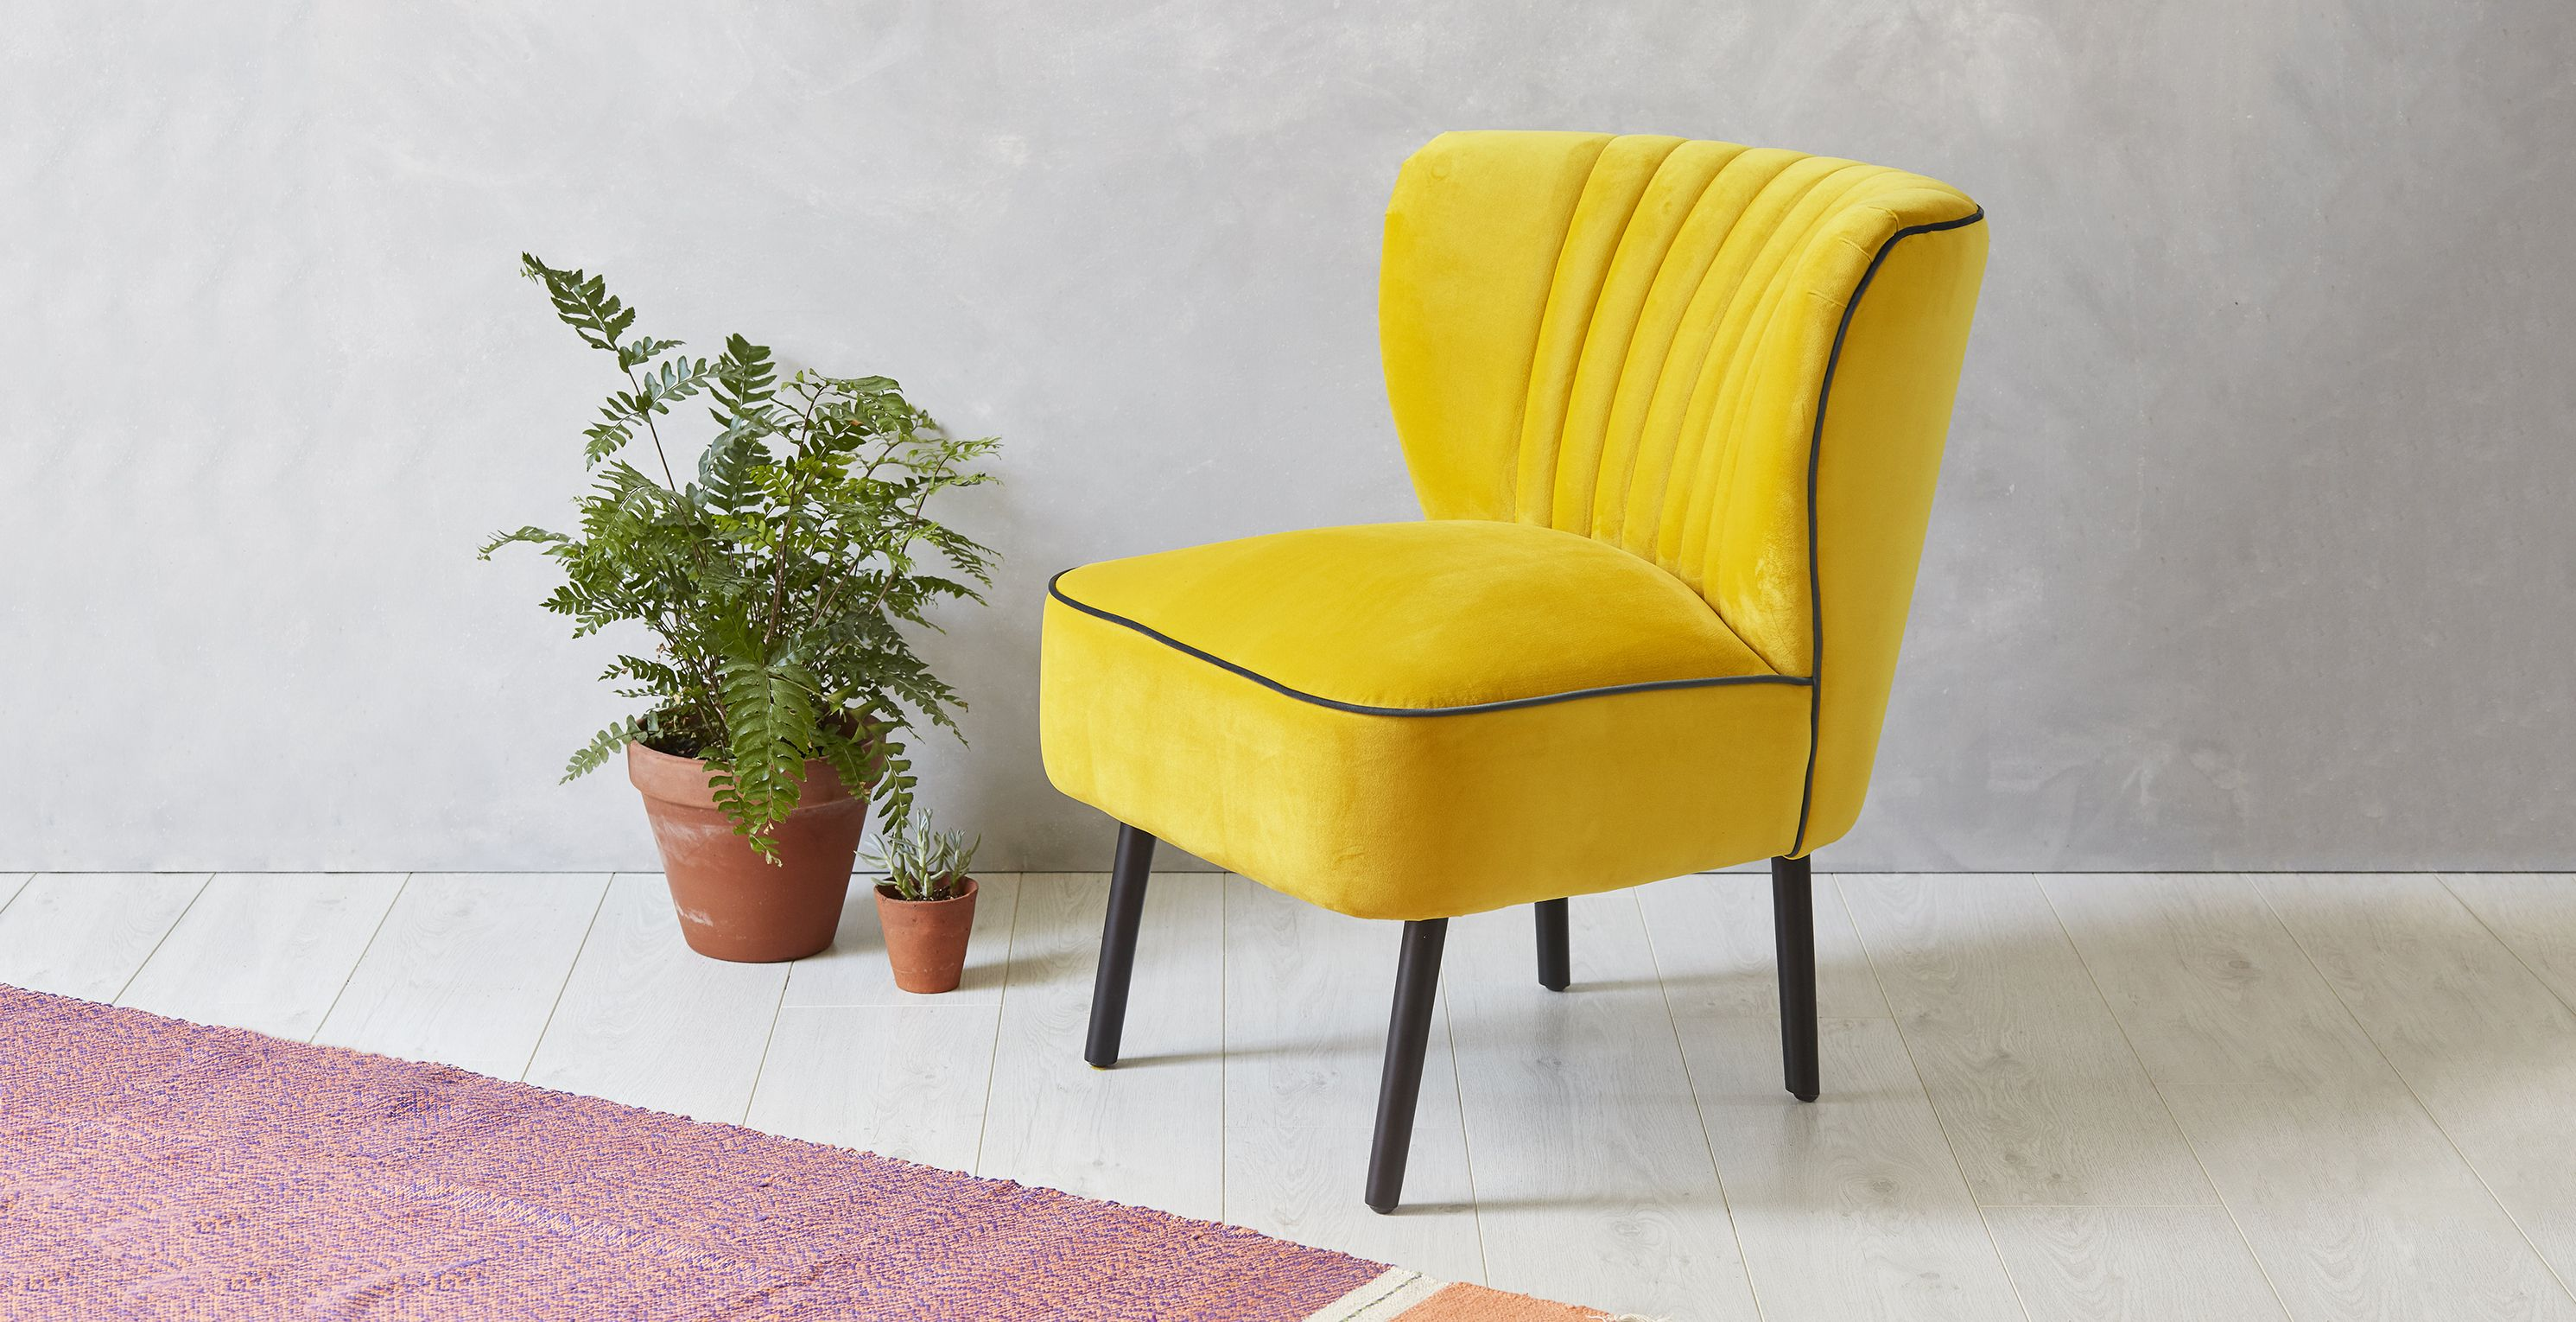 Dimensions H73 x W61 x D70cm seat height 43cm Colour Yellow